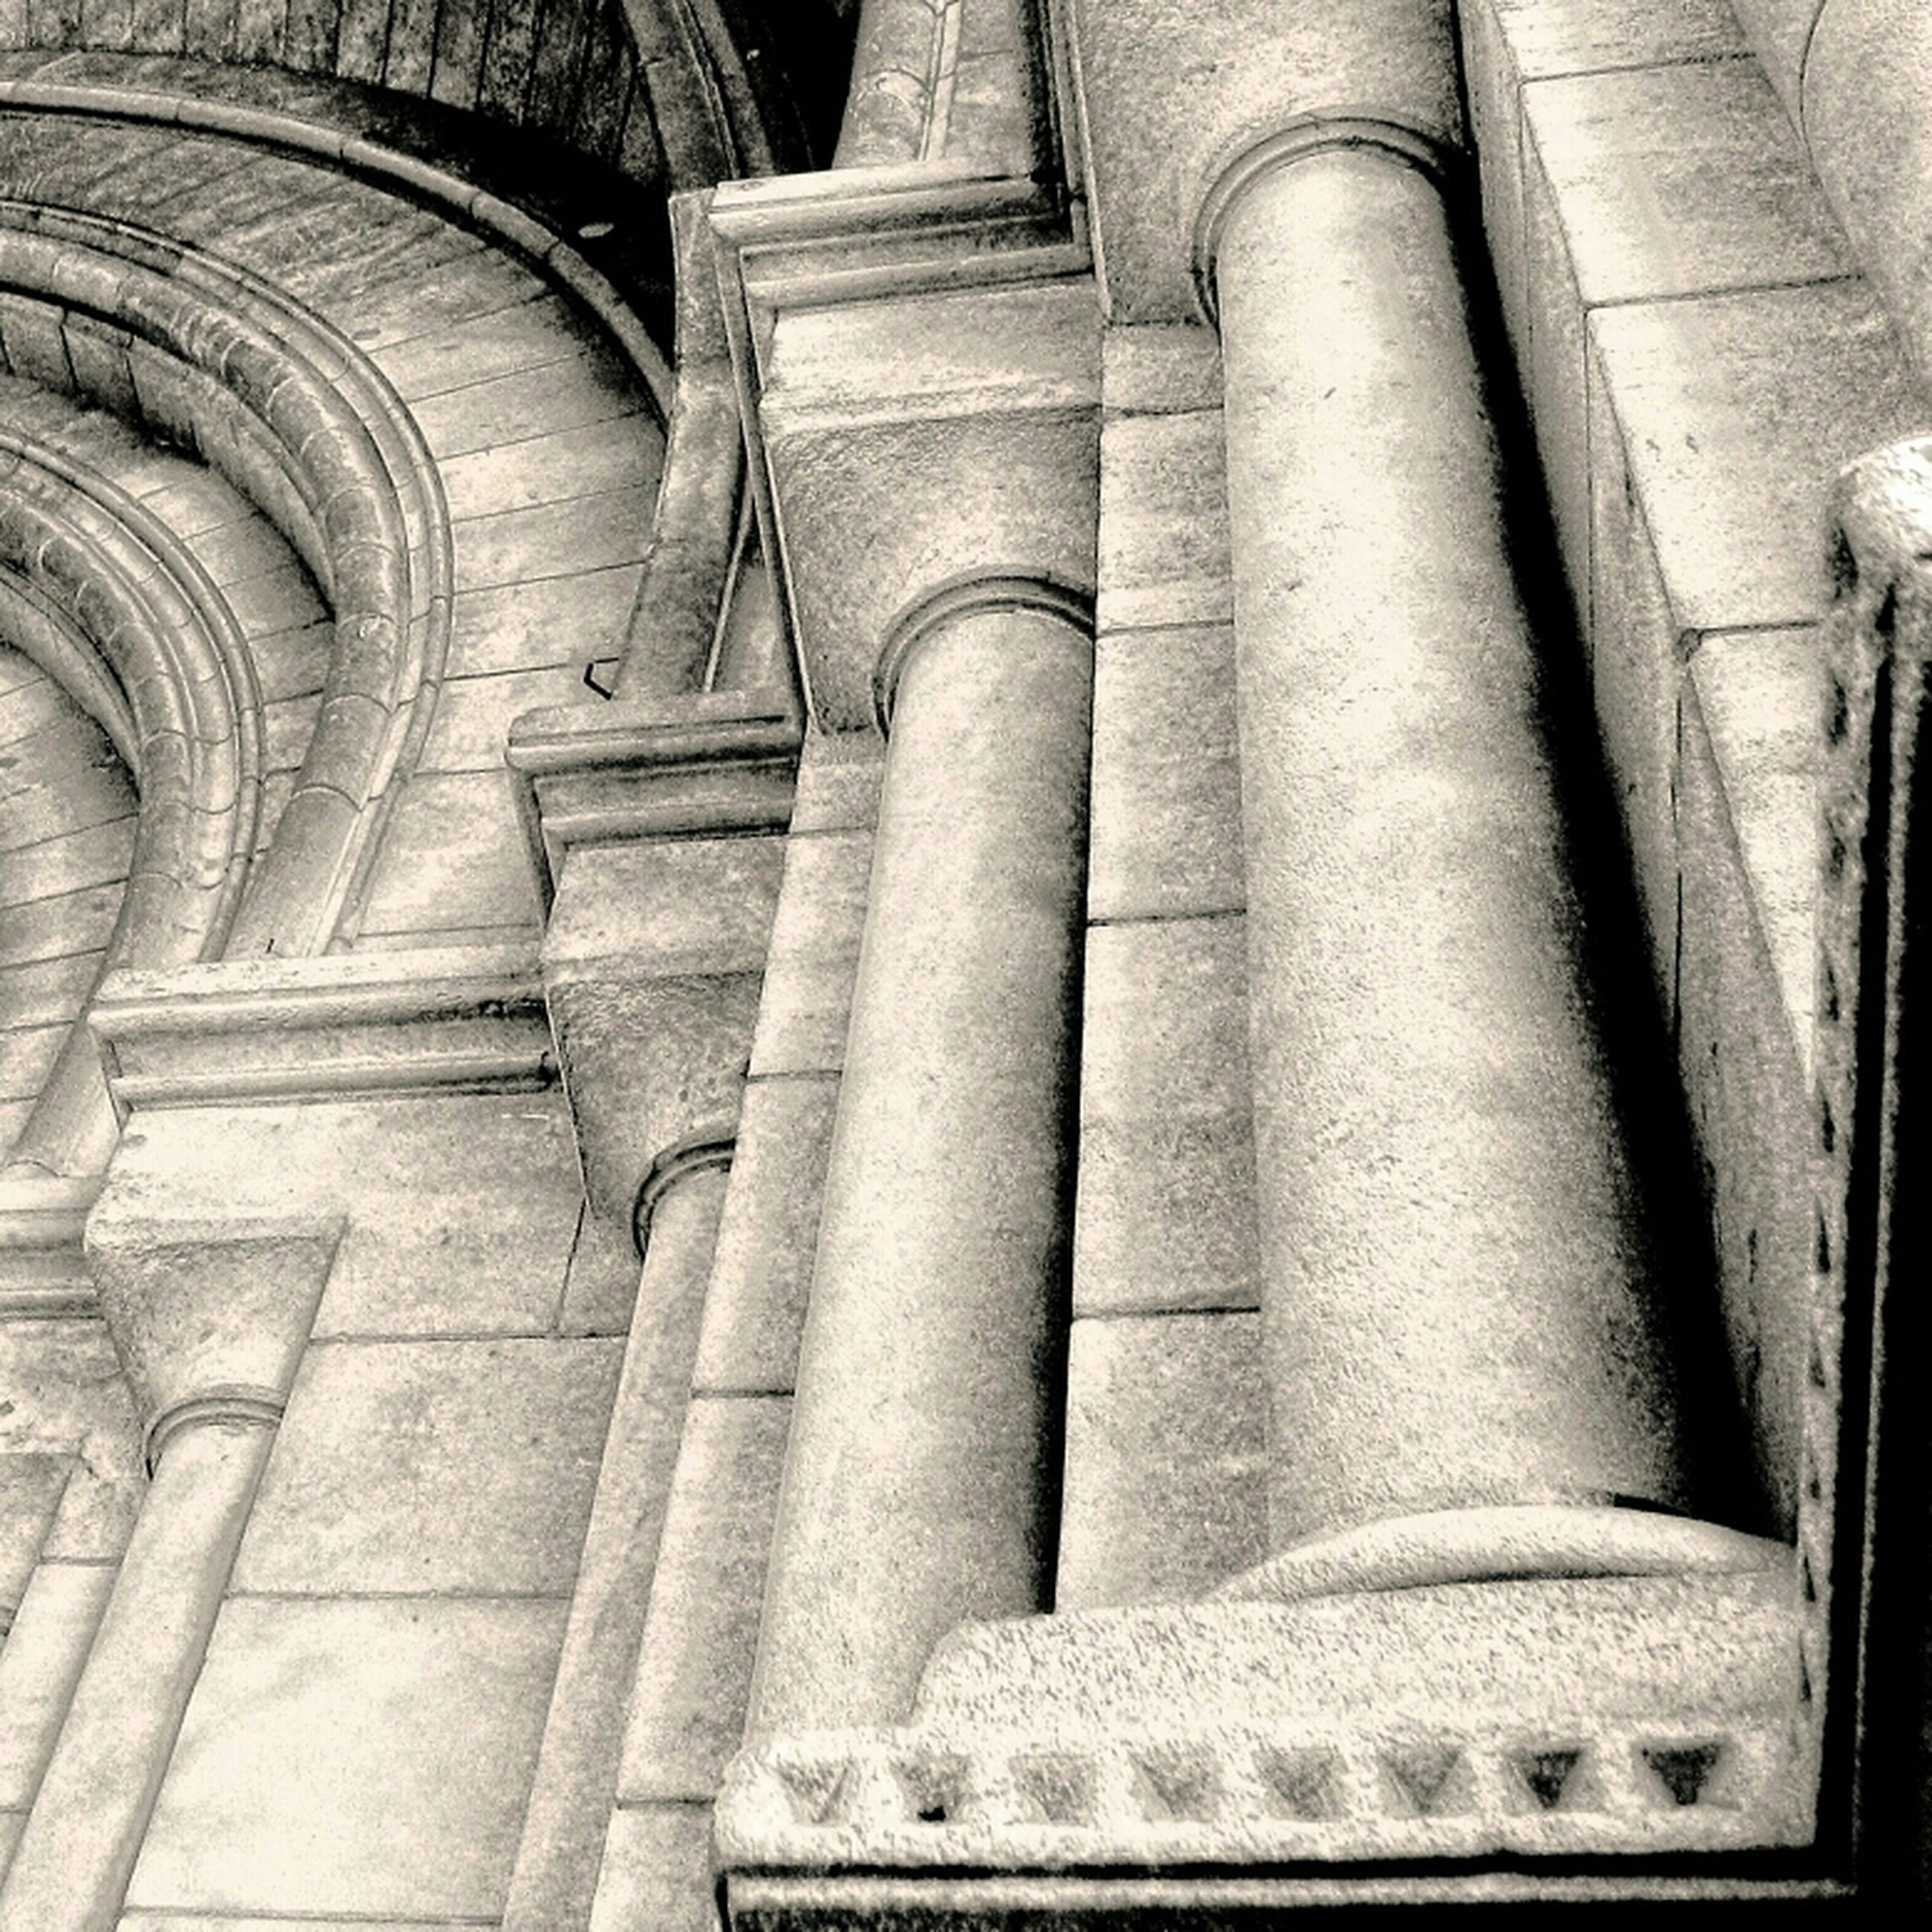 architecture, built structure, history, architectural column, column, indoors, old, low angle view, the past, ancient, famous place, religion, place of worship, old ruin, historic, arch, colonnade, travel destinations, ancient civilization, building exterior